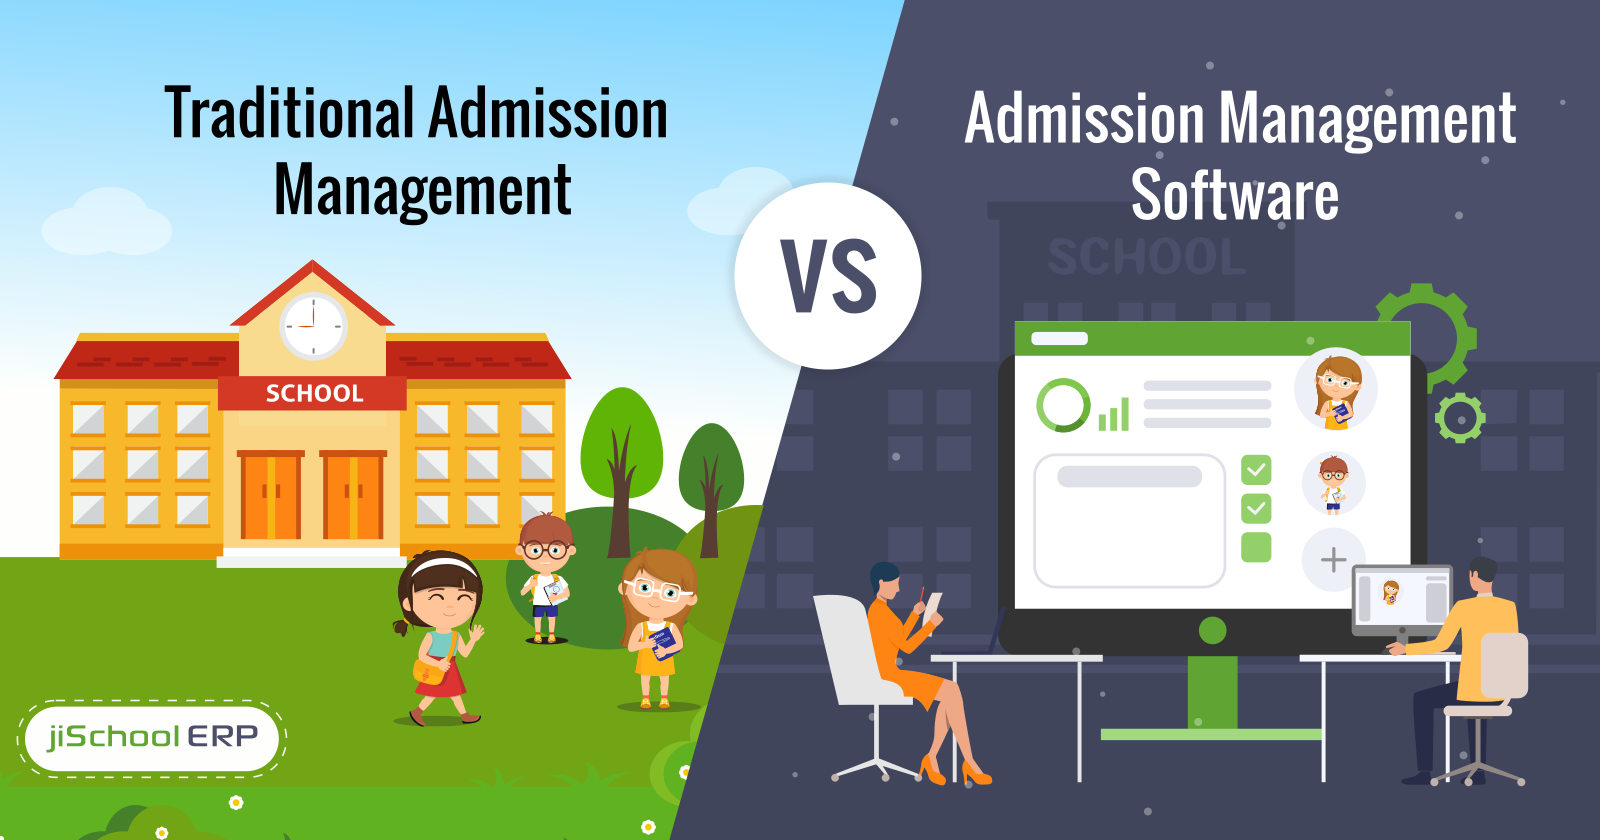 Traditional Admission Management Versus the Admission Management Software